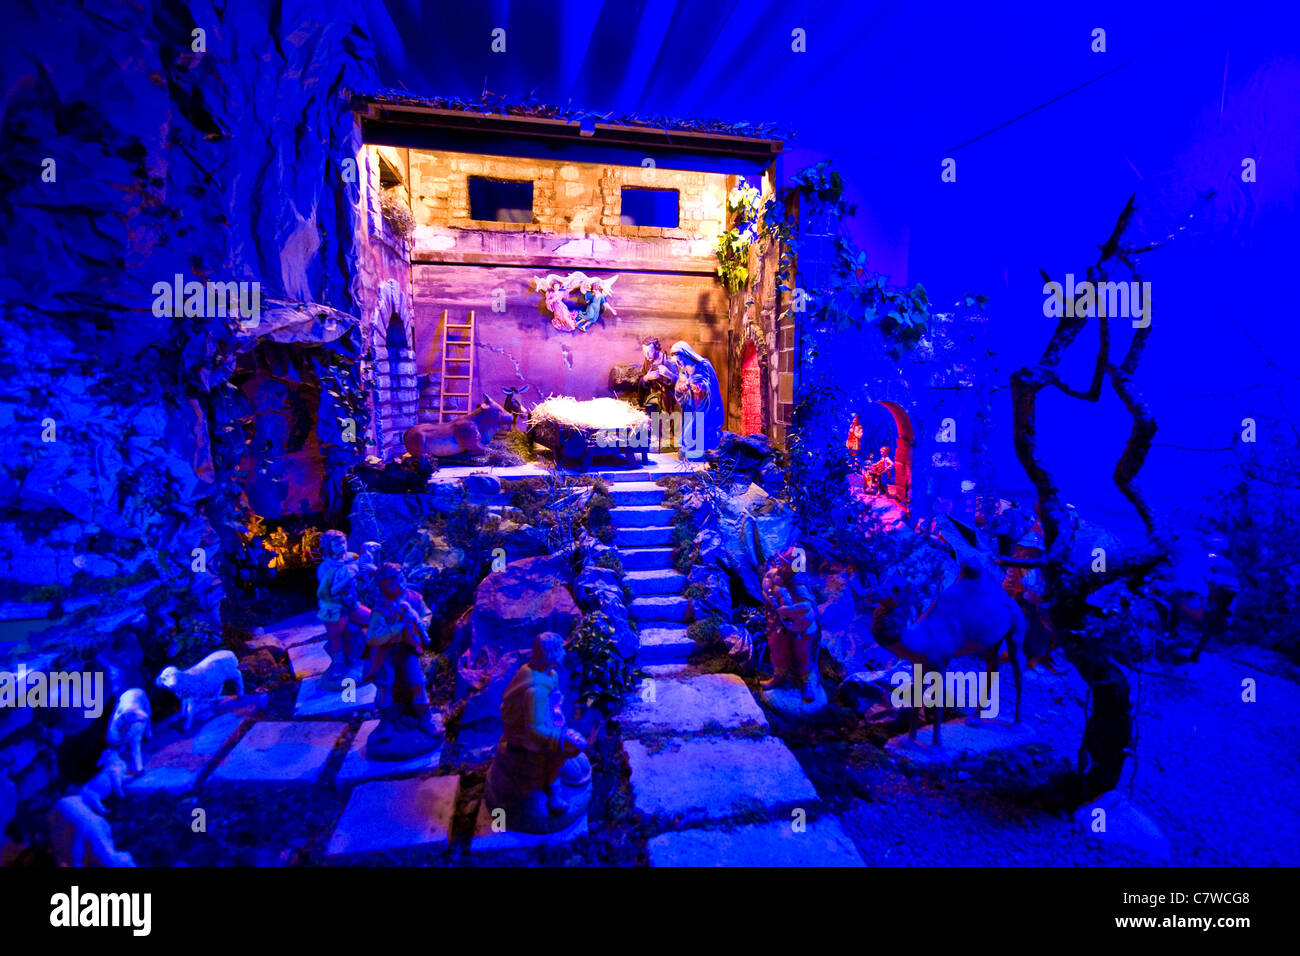 Christmas crib - Stock Image